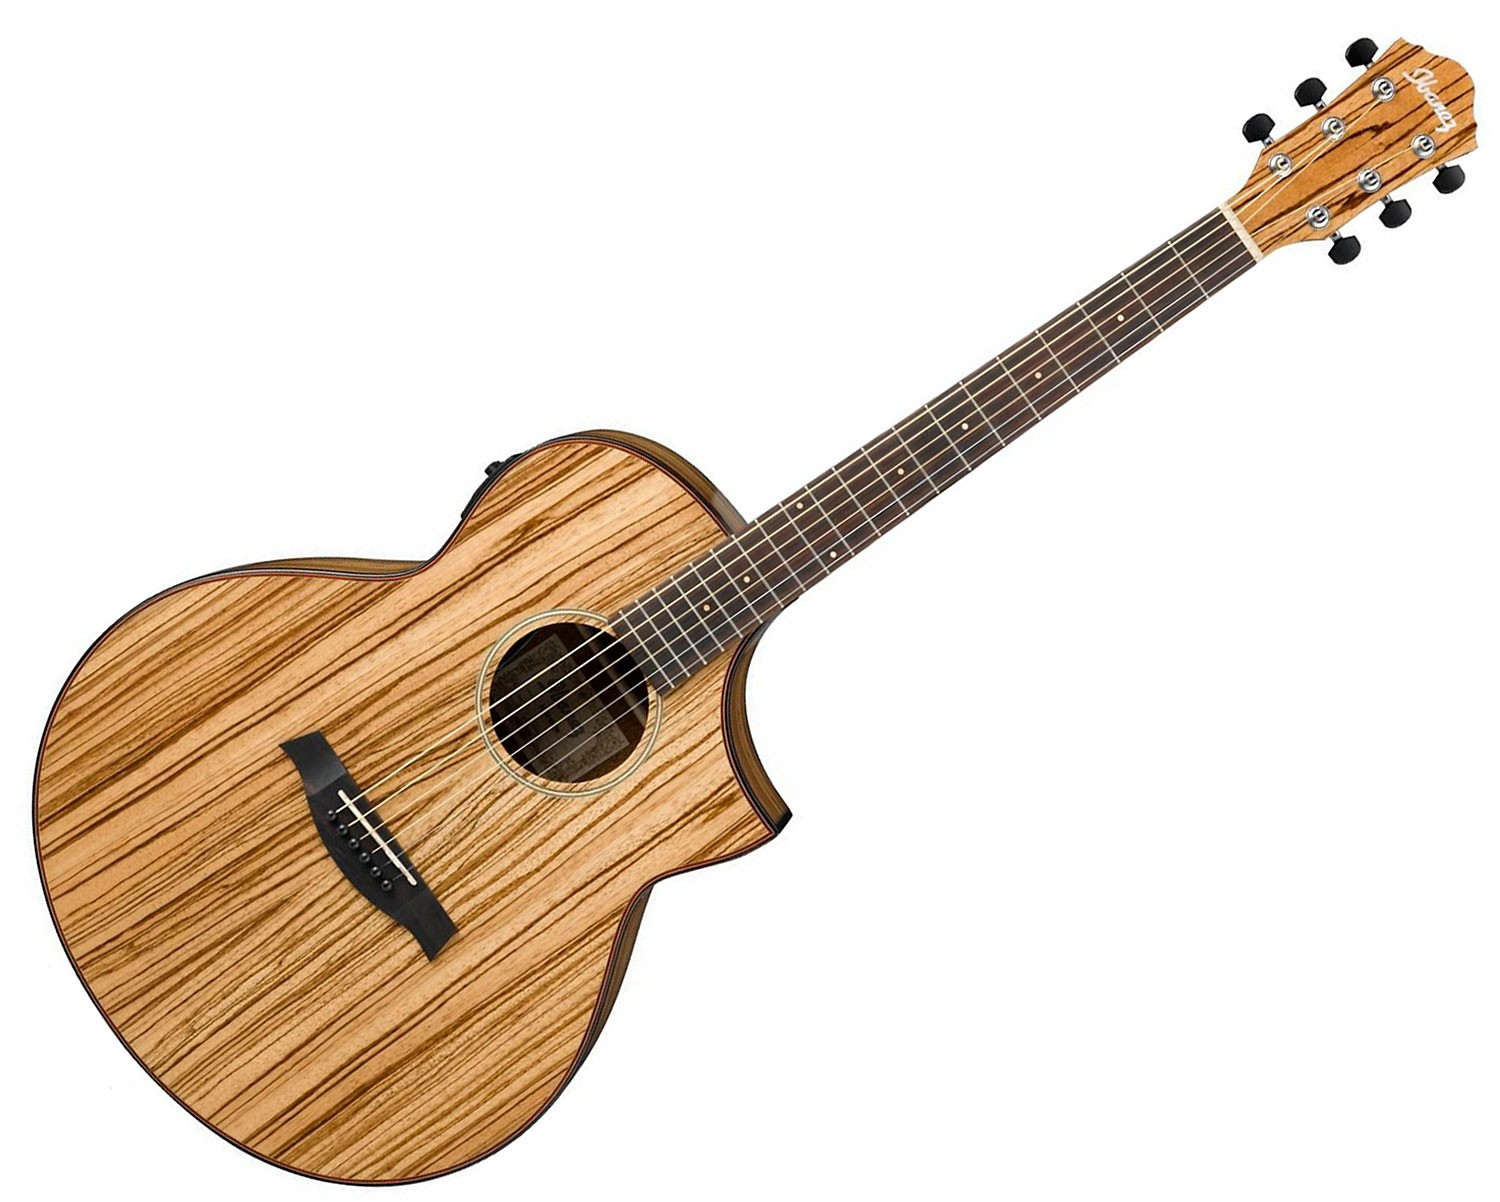 ibanez aew40zw nt acoustic electric guitar. Black Bedroom Furniture Sets. Home Design Ideas